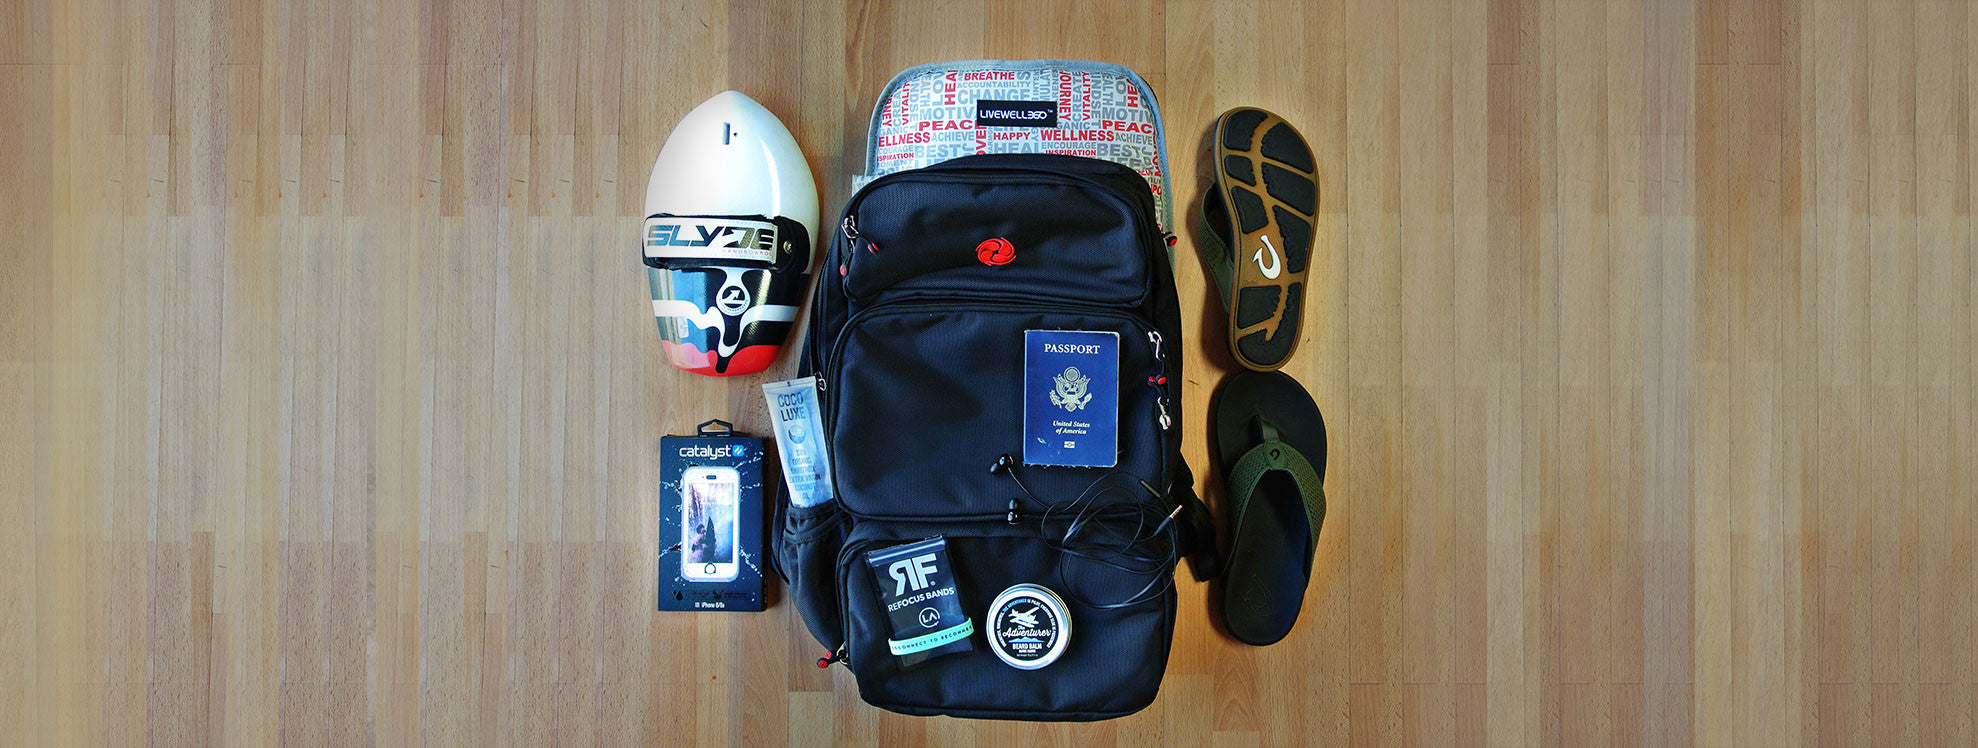 8 Cool Products You Must Pack in Your Carry-On Bag